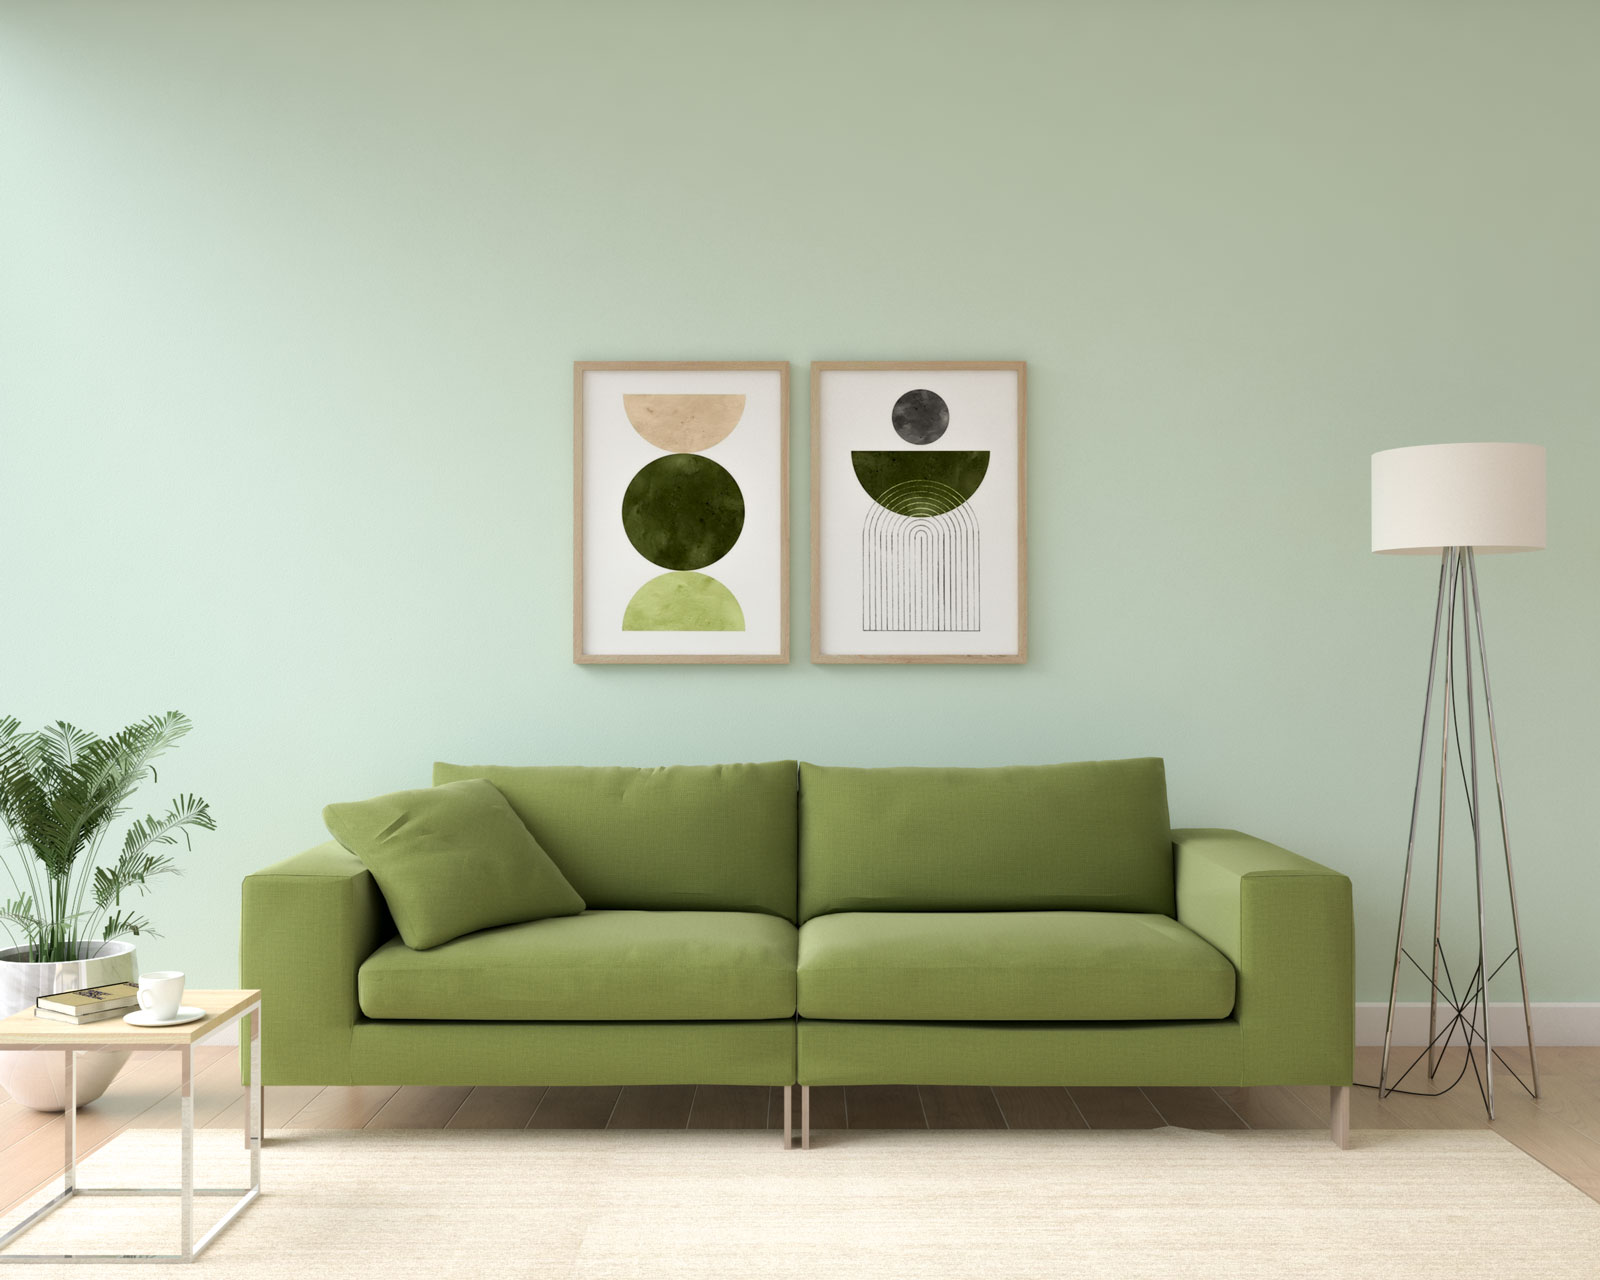 Light mint walls with olive sofa